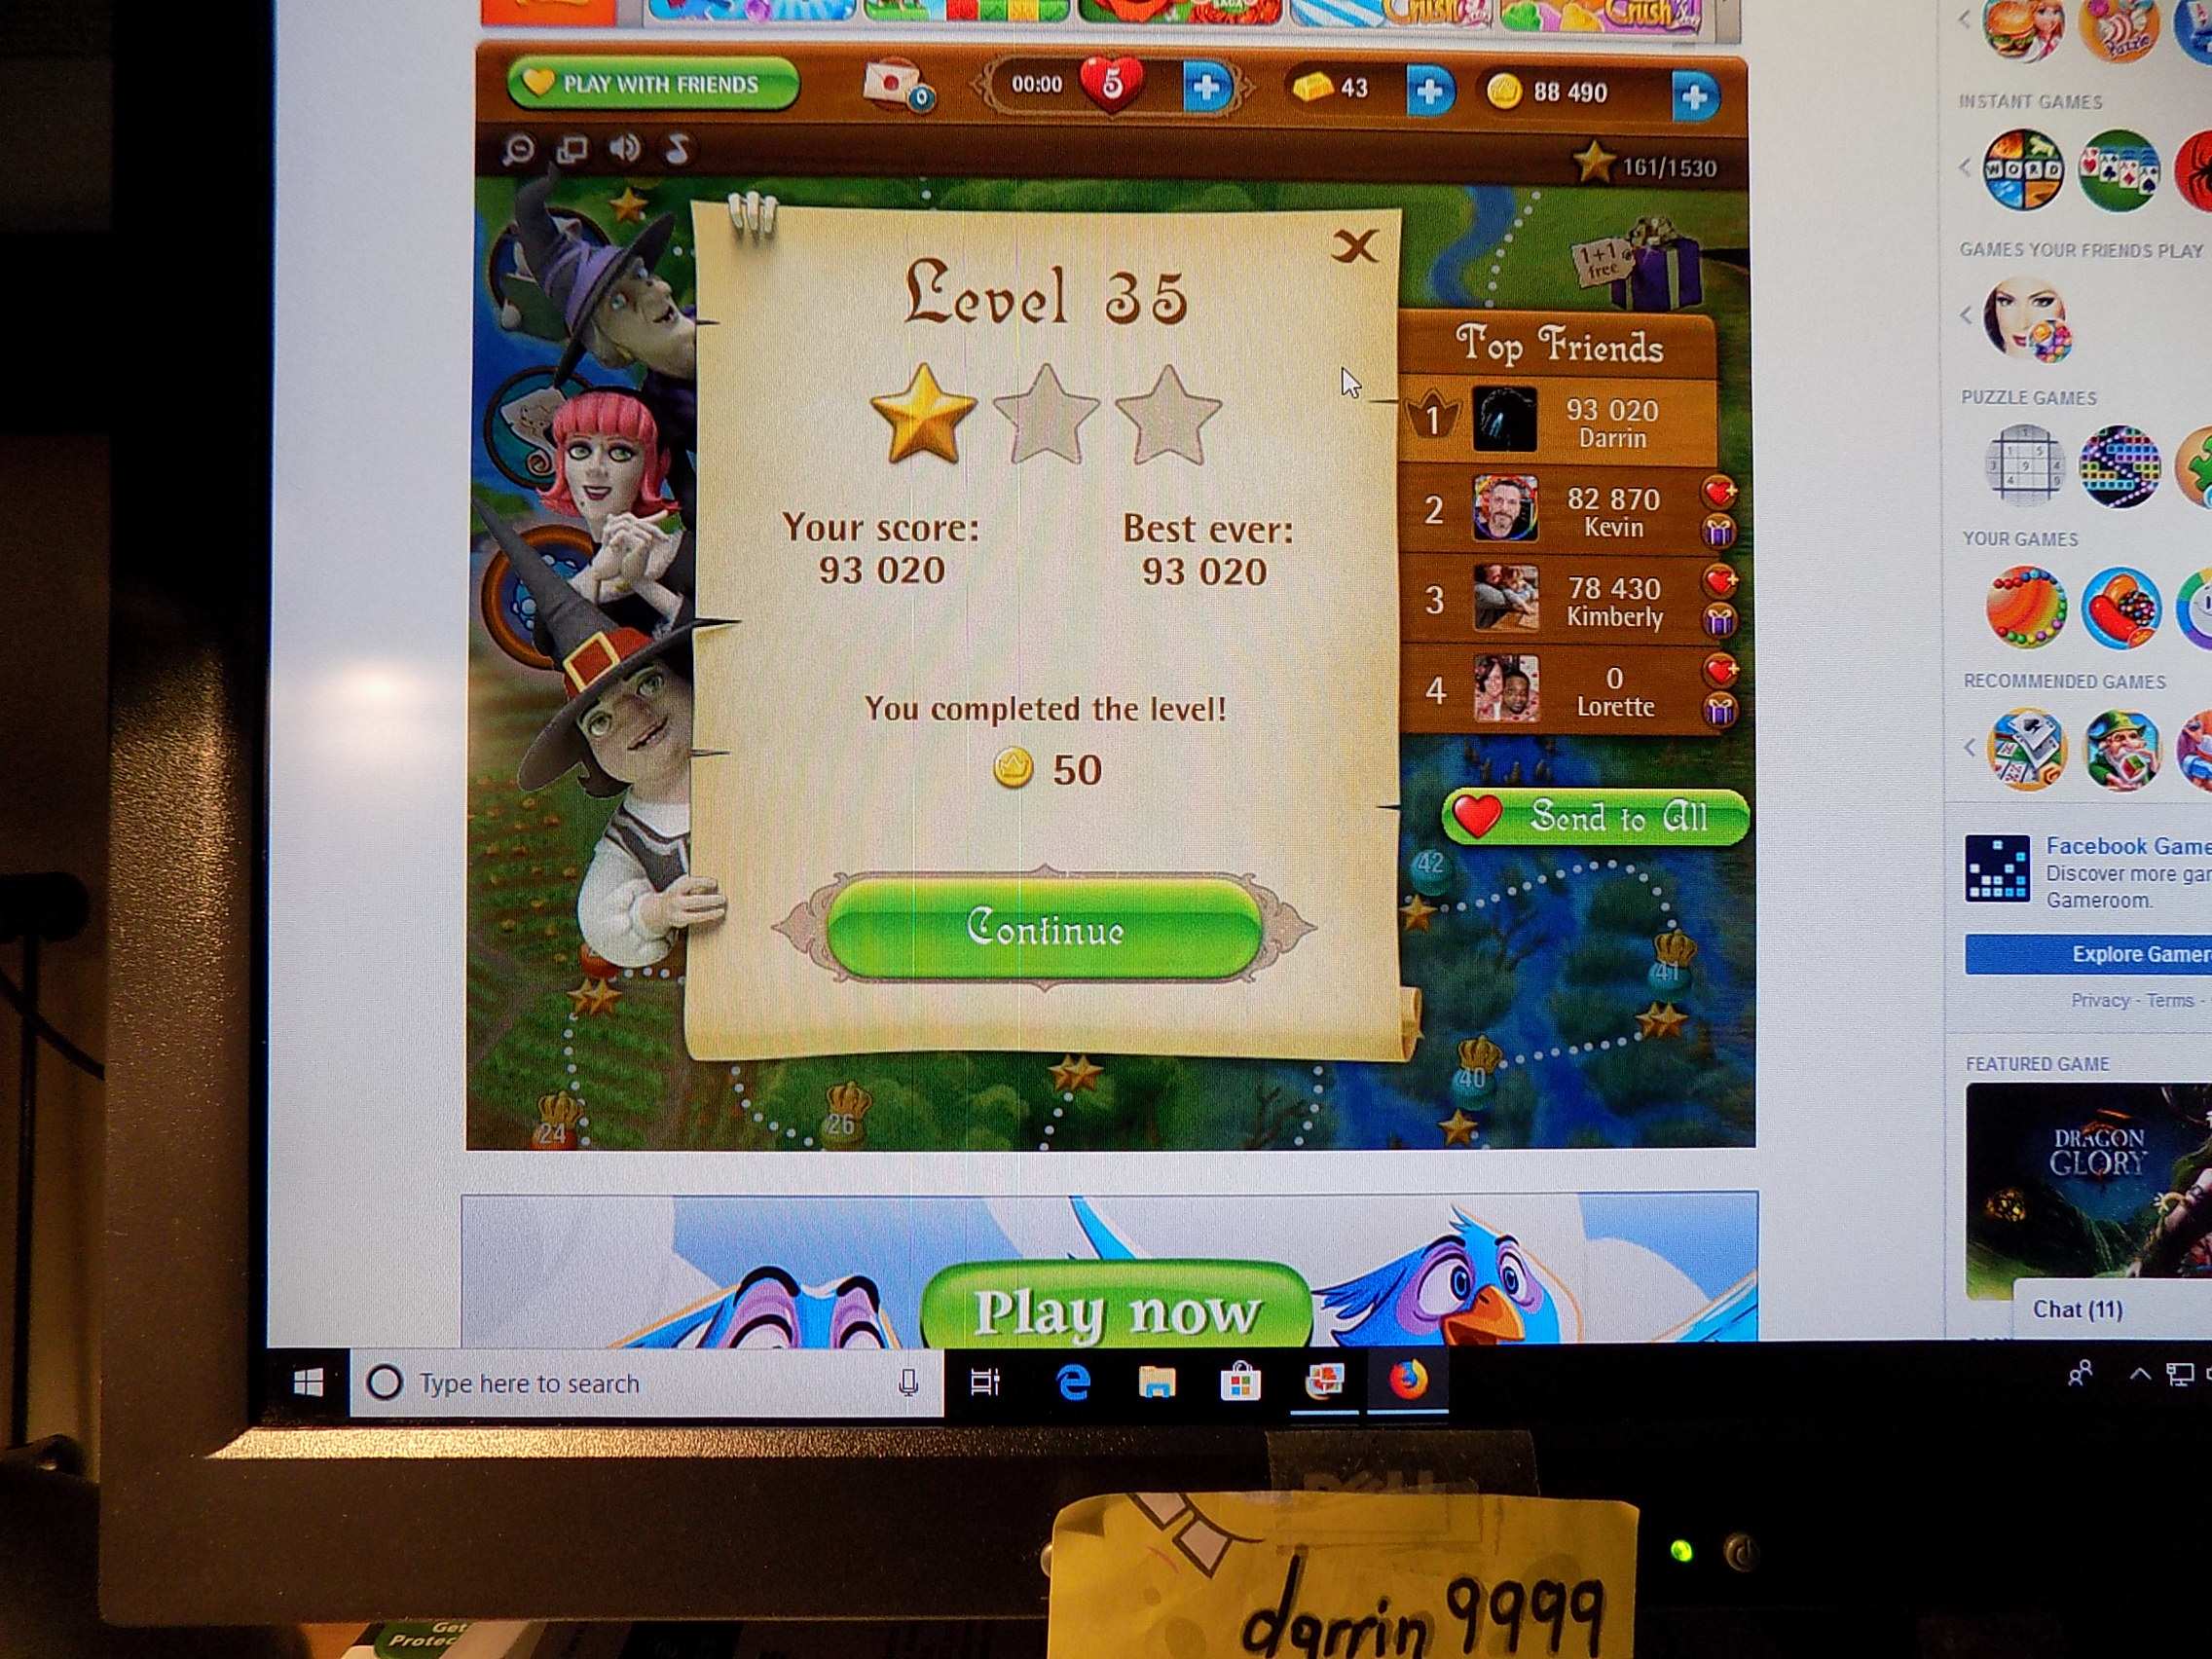 darrin9999: Bubble Witch Saga: Level 35 (Web) 93,020 points on 2019-06-20 14:36:52